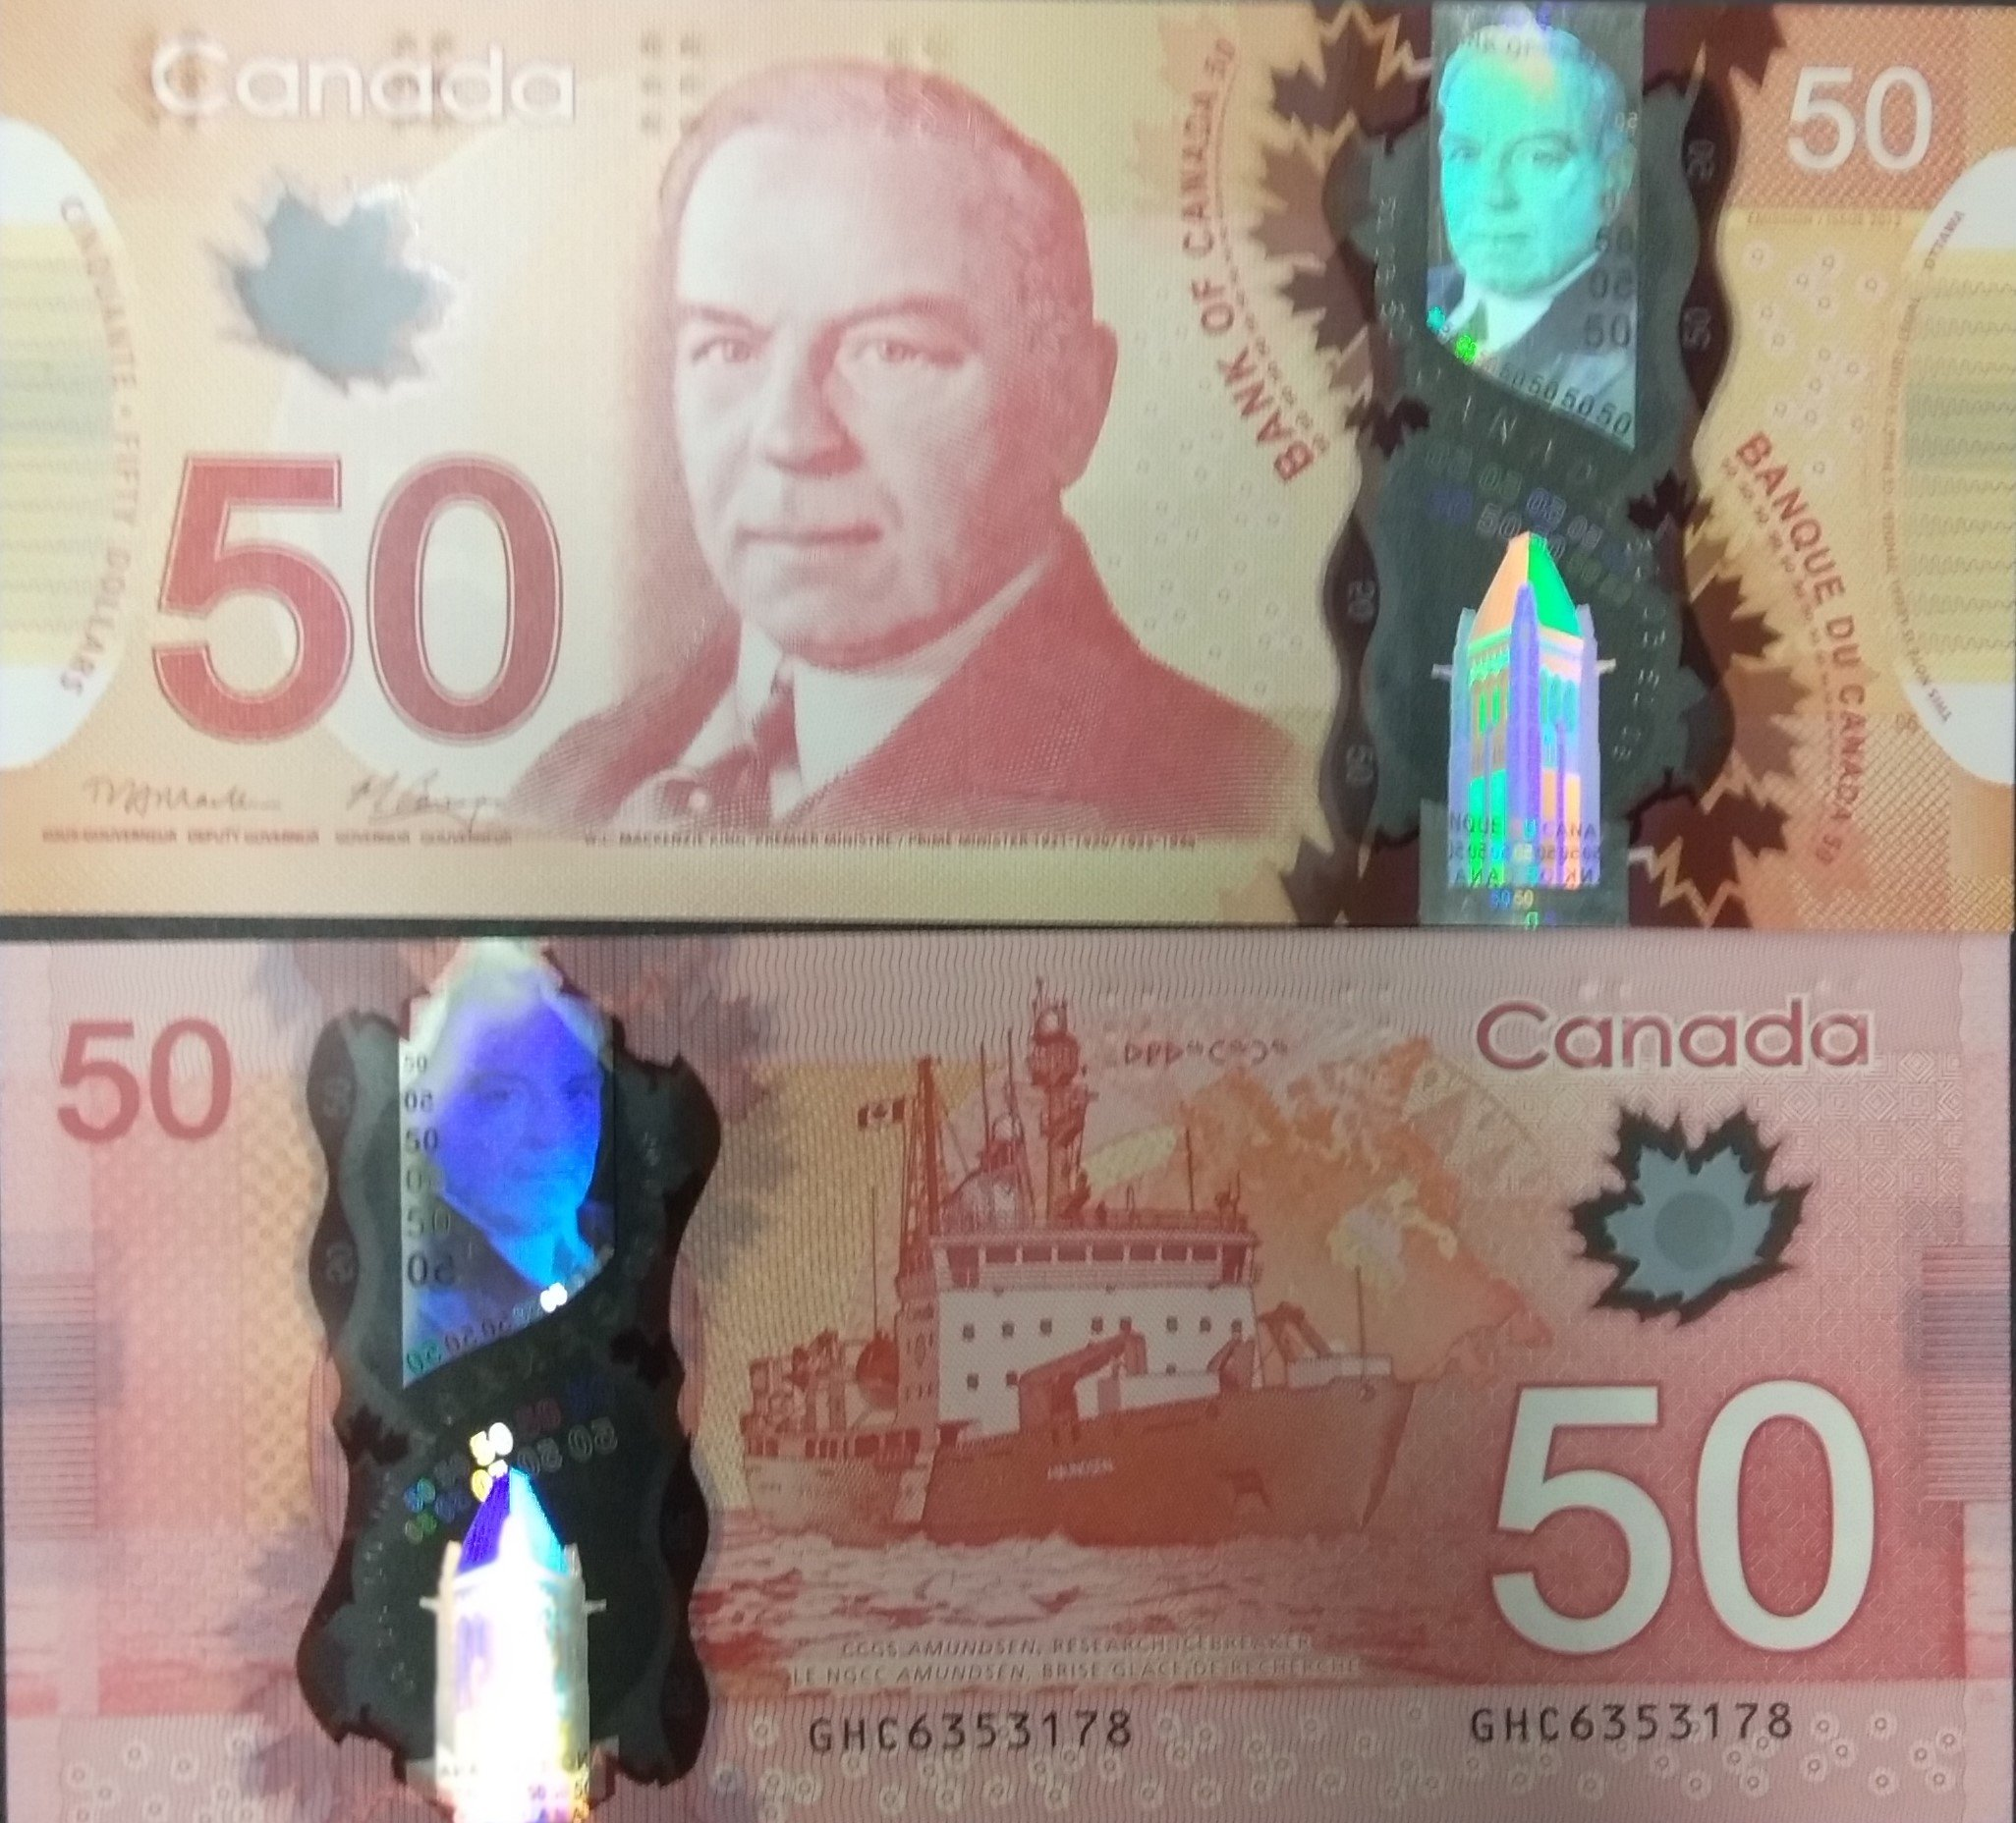 Canada 50 dollars polymer banknote for sale